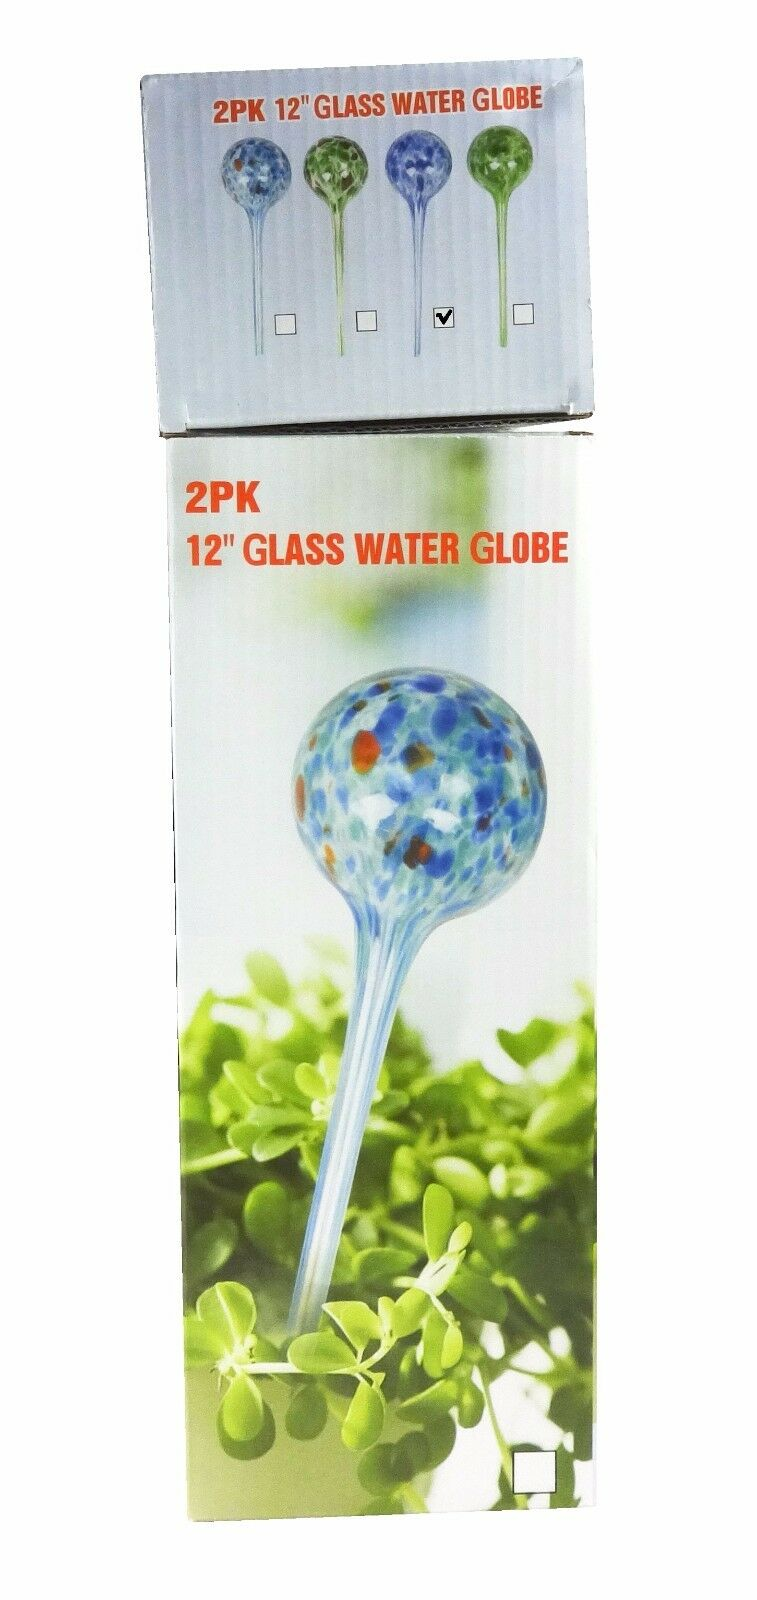 2 Pack of 12 in Aqua Globes (Blue) Glass Bulbs Plant Watering System, Stylish